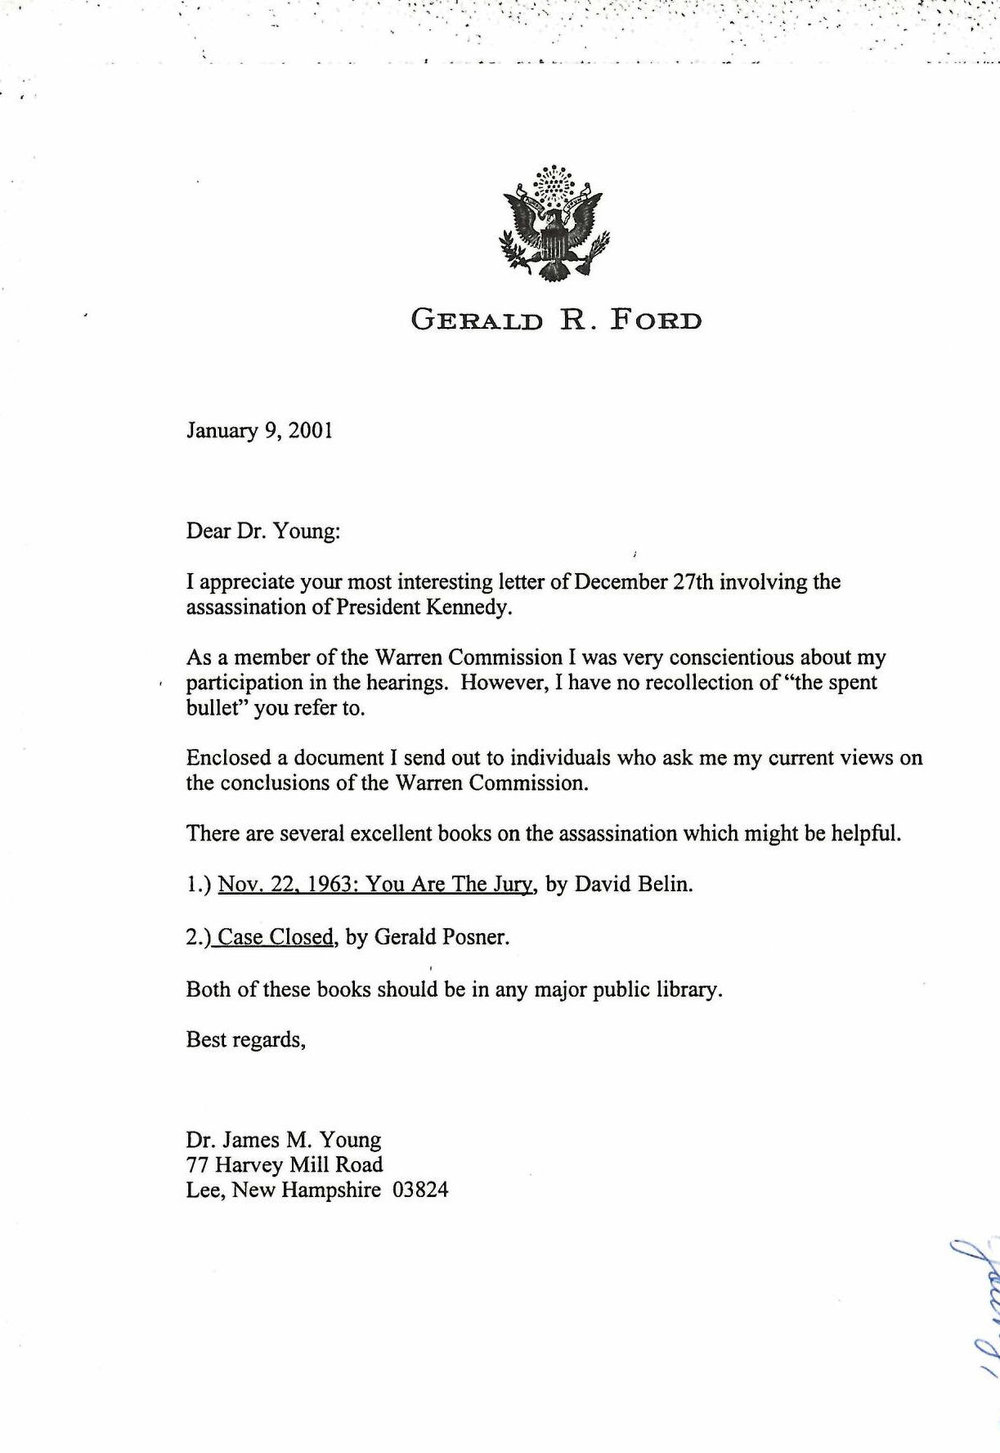 Ford letter to Dr. Young.jpg